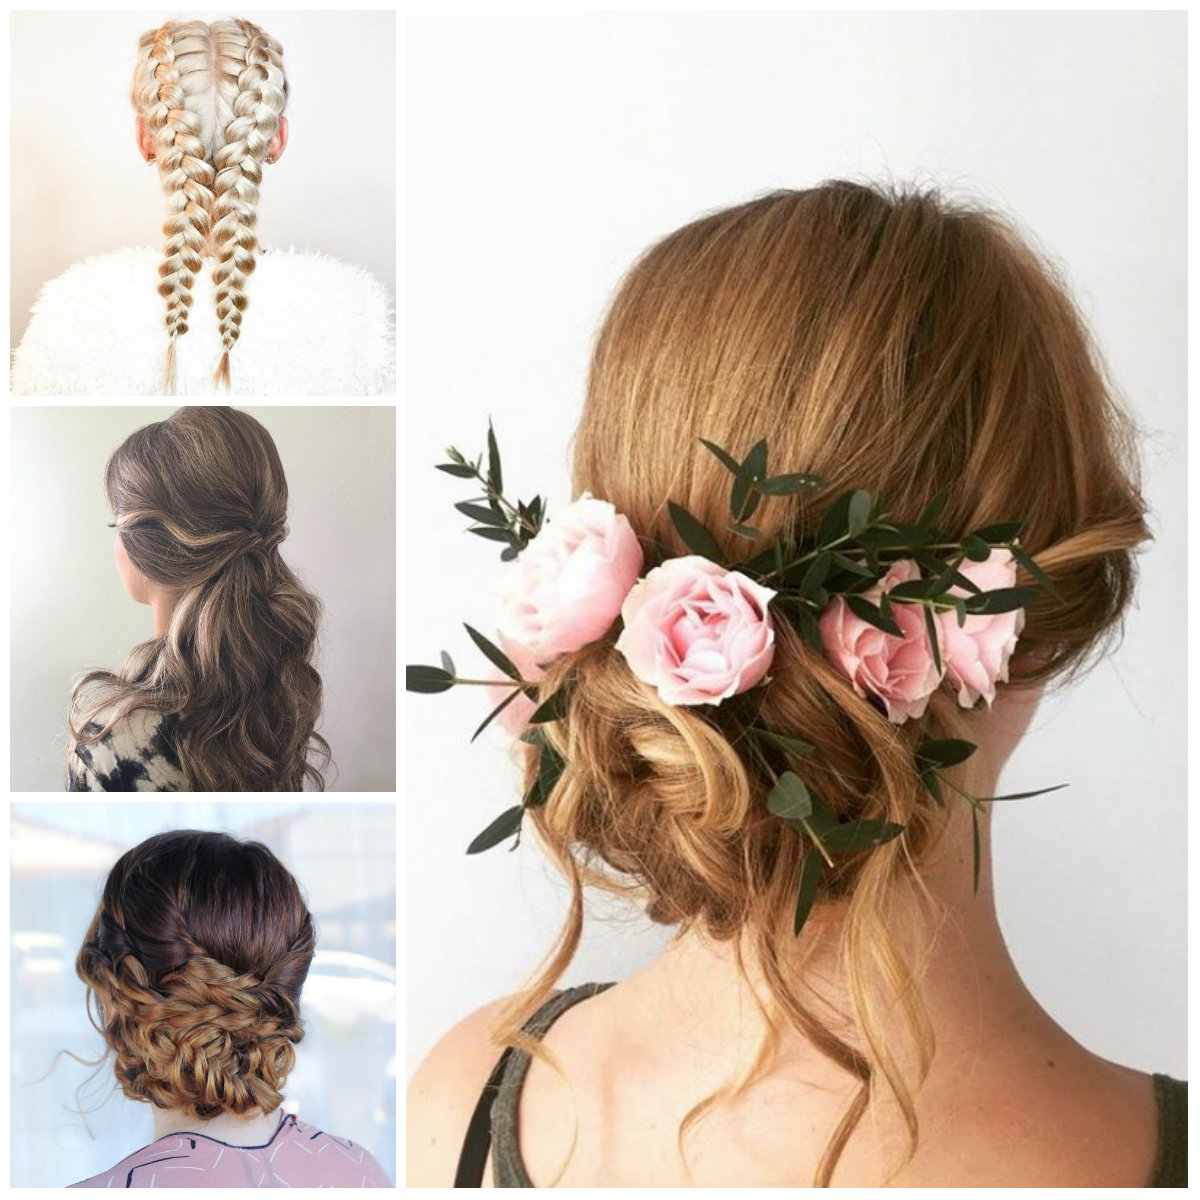 2017 Updo Hairstyles for Prom